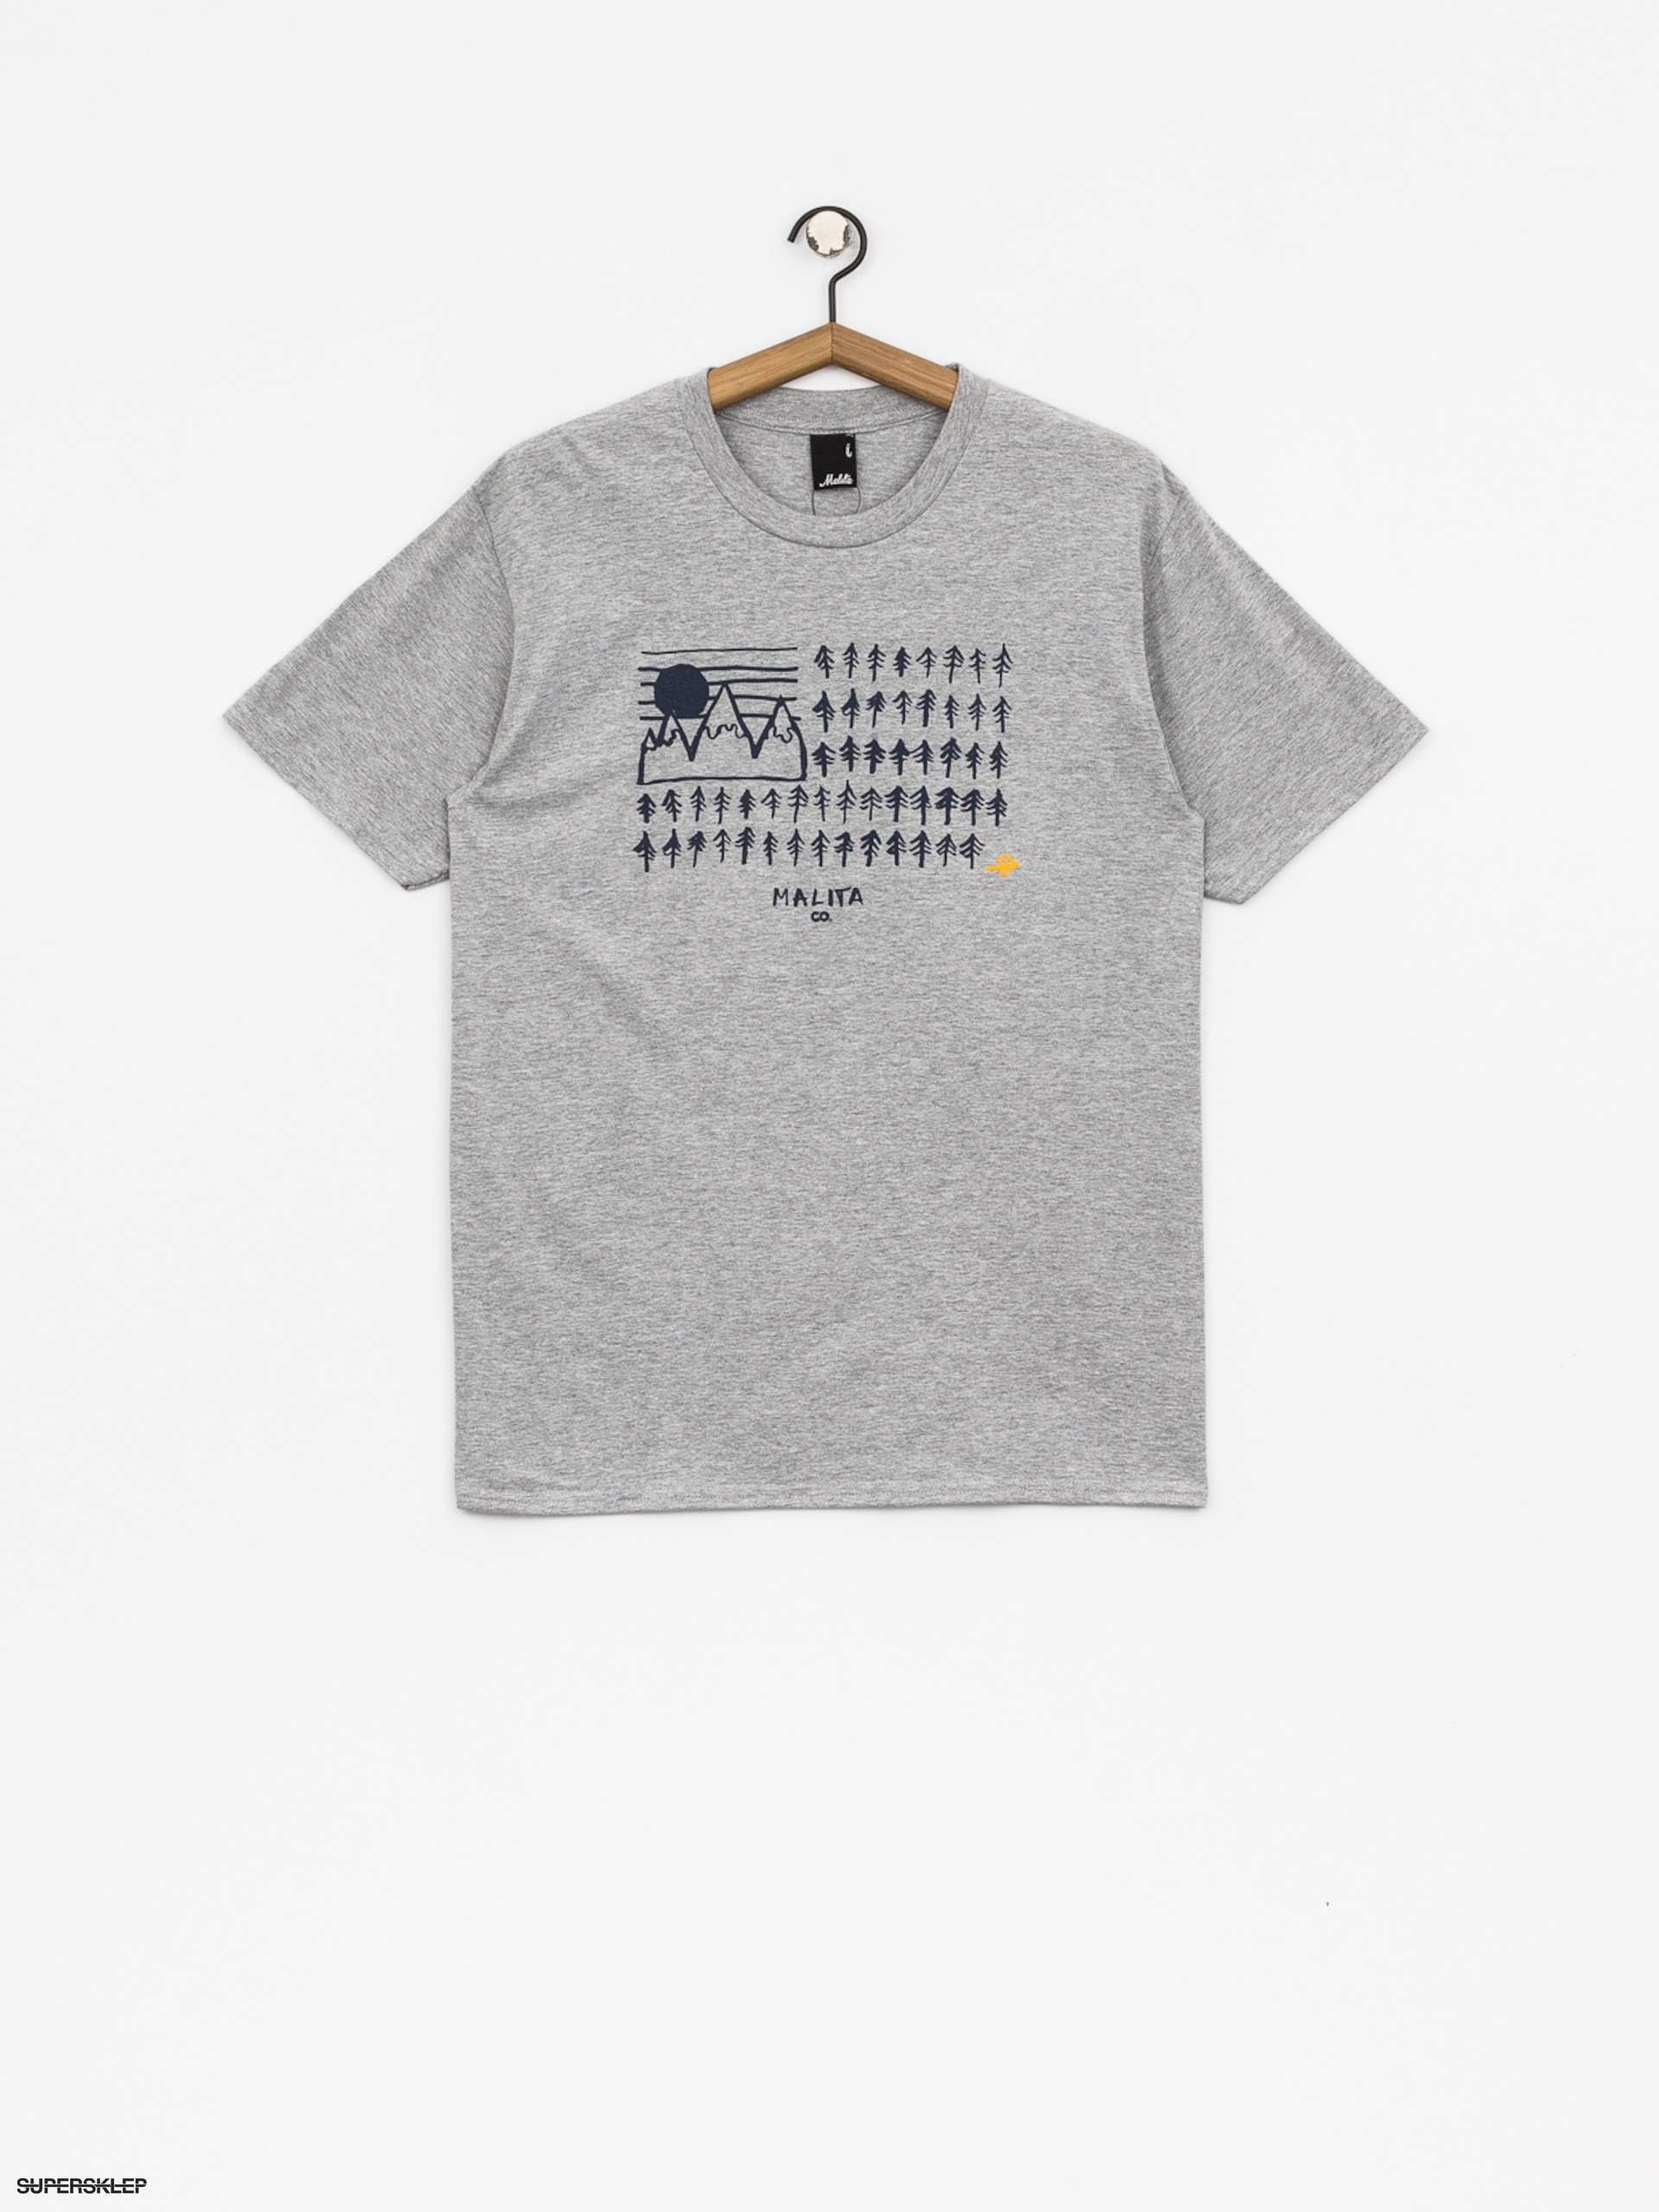 T-shirt Malita Flag (heather grey)